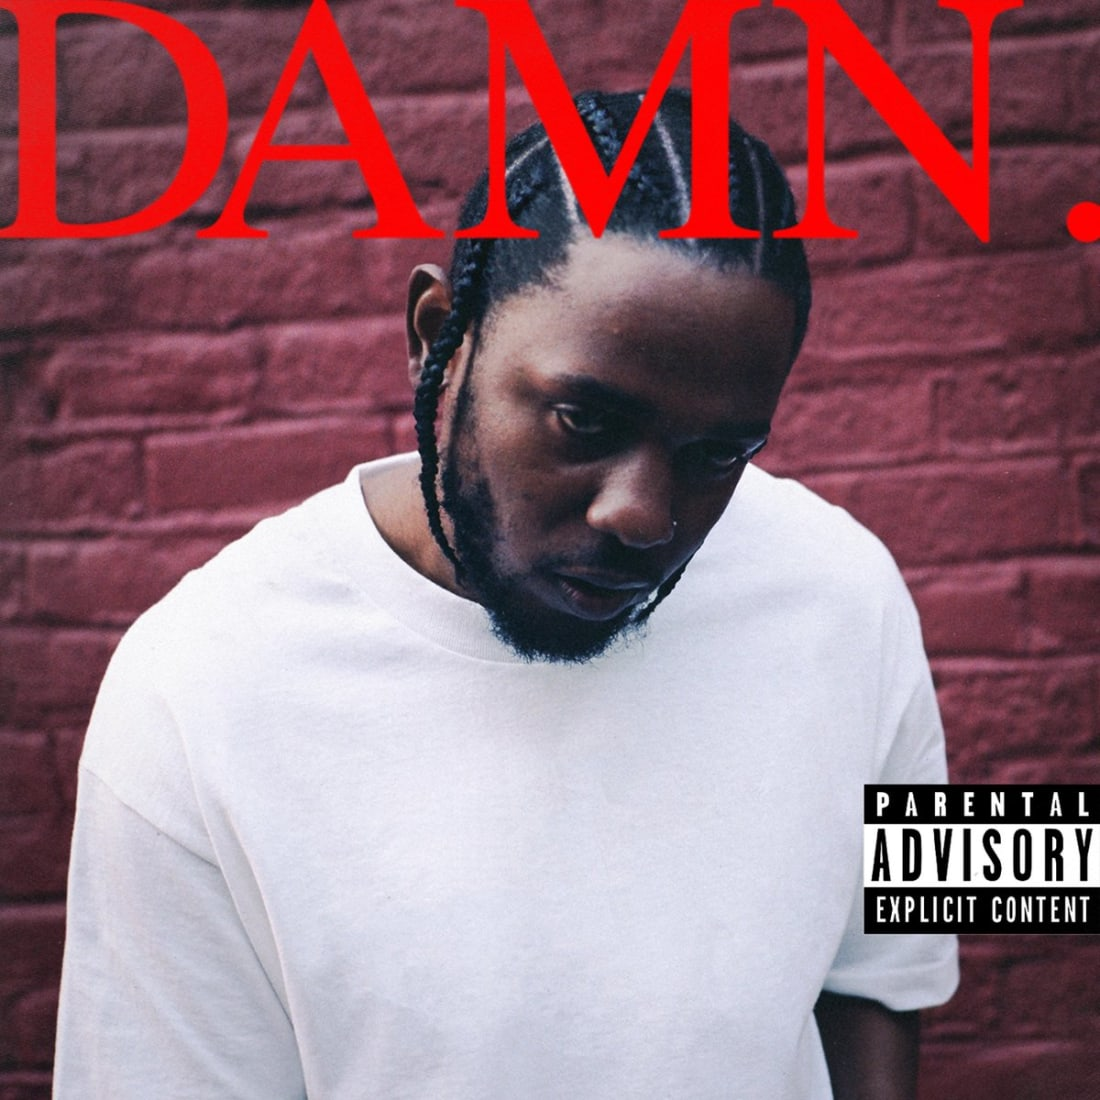 Kendrick Lamar, \u0027Damn\u0027 - The Best Albums of 2017 | Complex